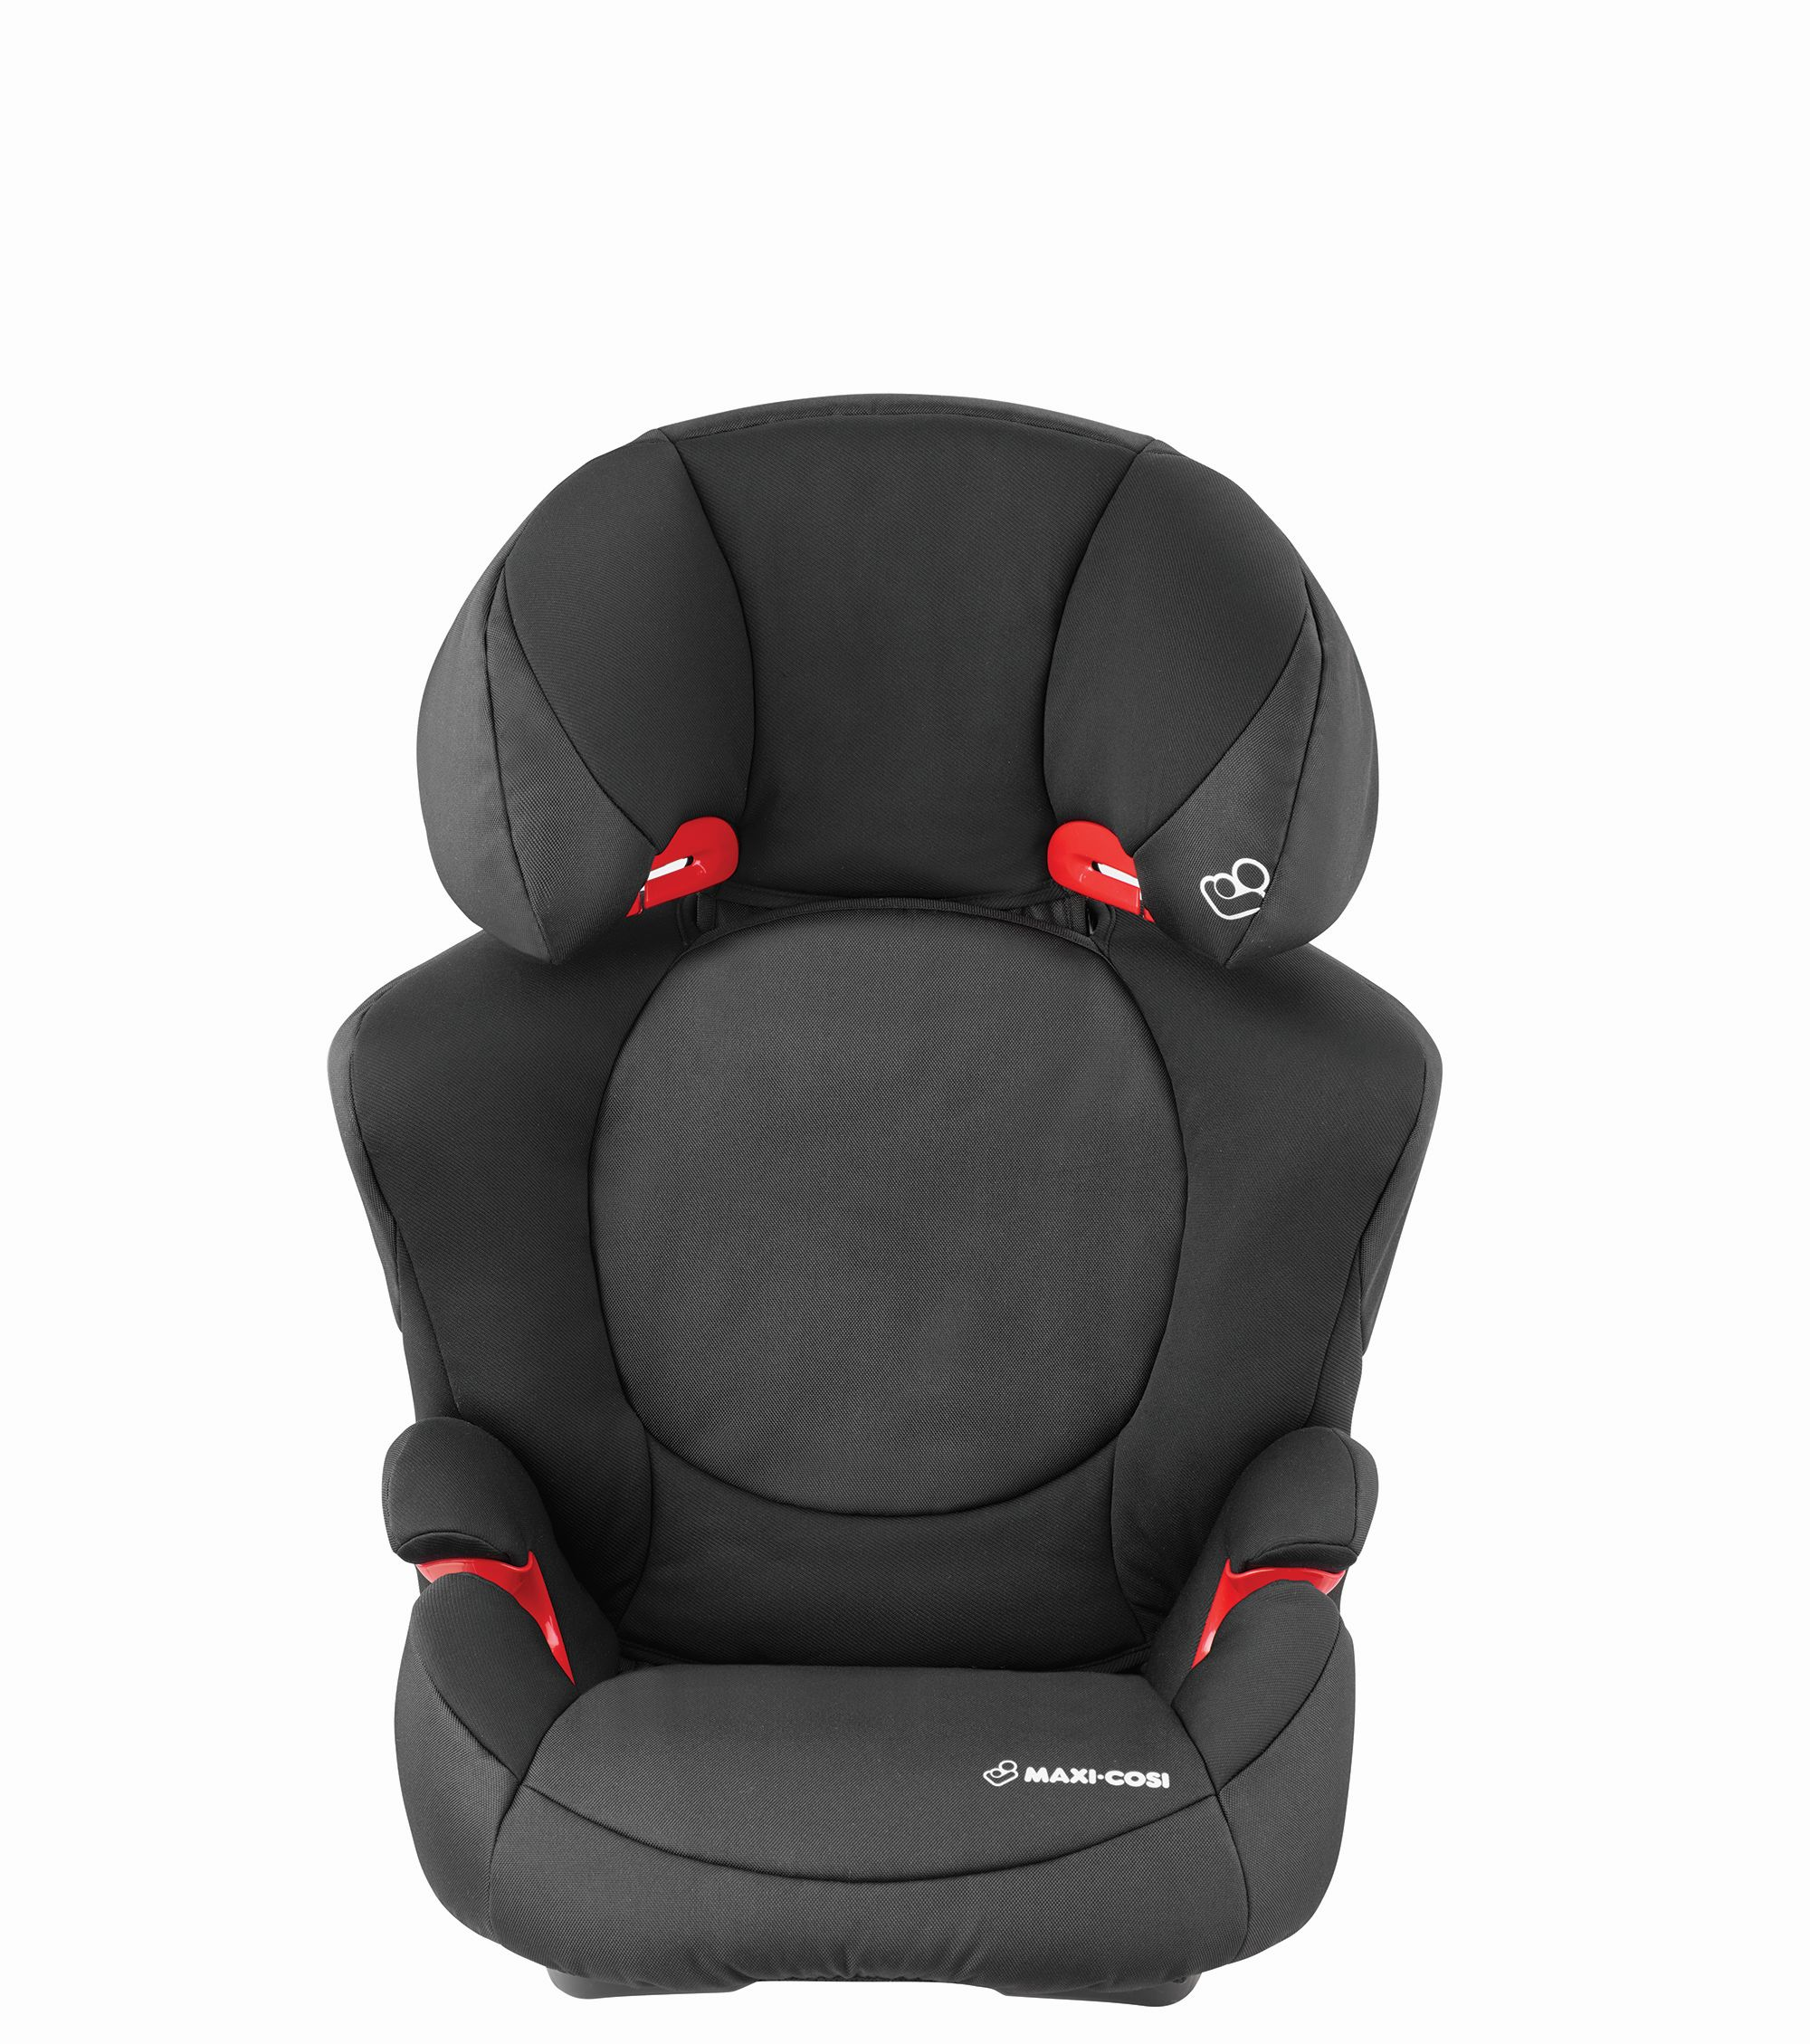 maxi cosi kindersitz rodi xp fix 2019 night black online. Black Bedroom Furniture Sets. Home Design Ideas